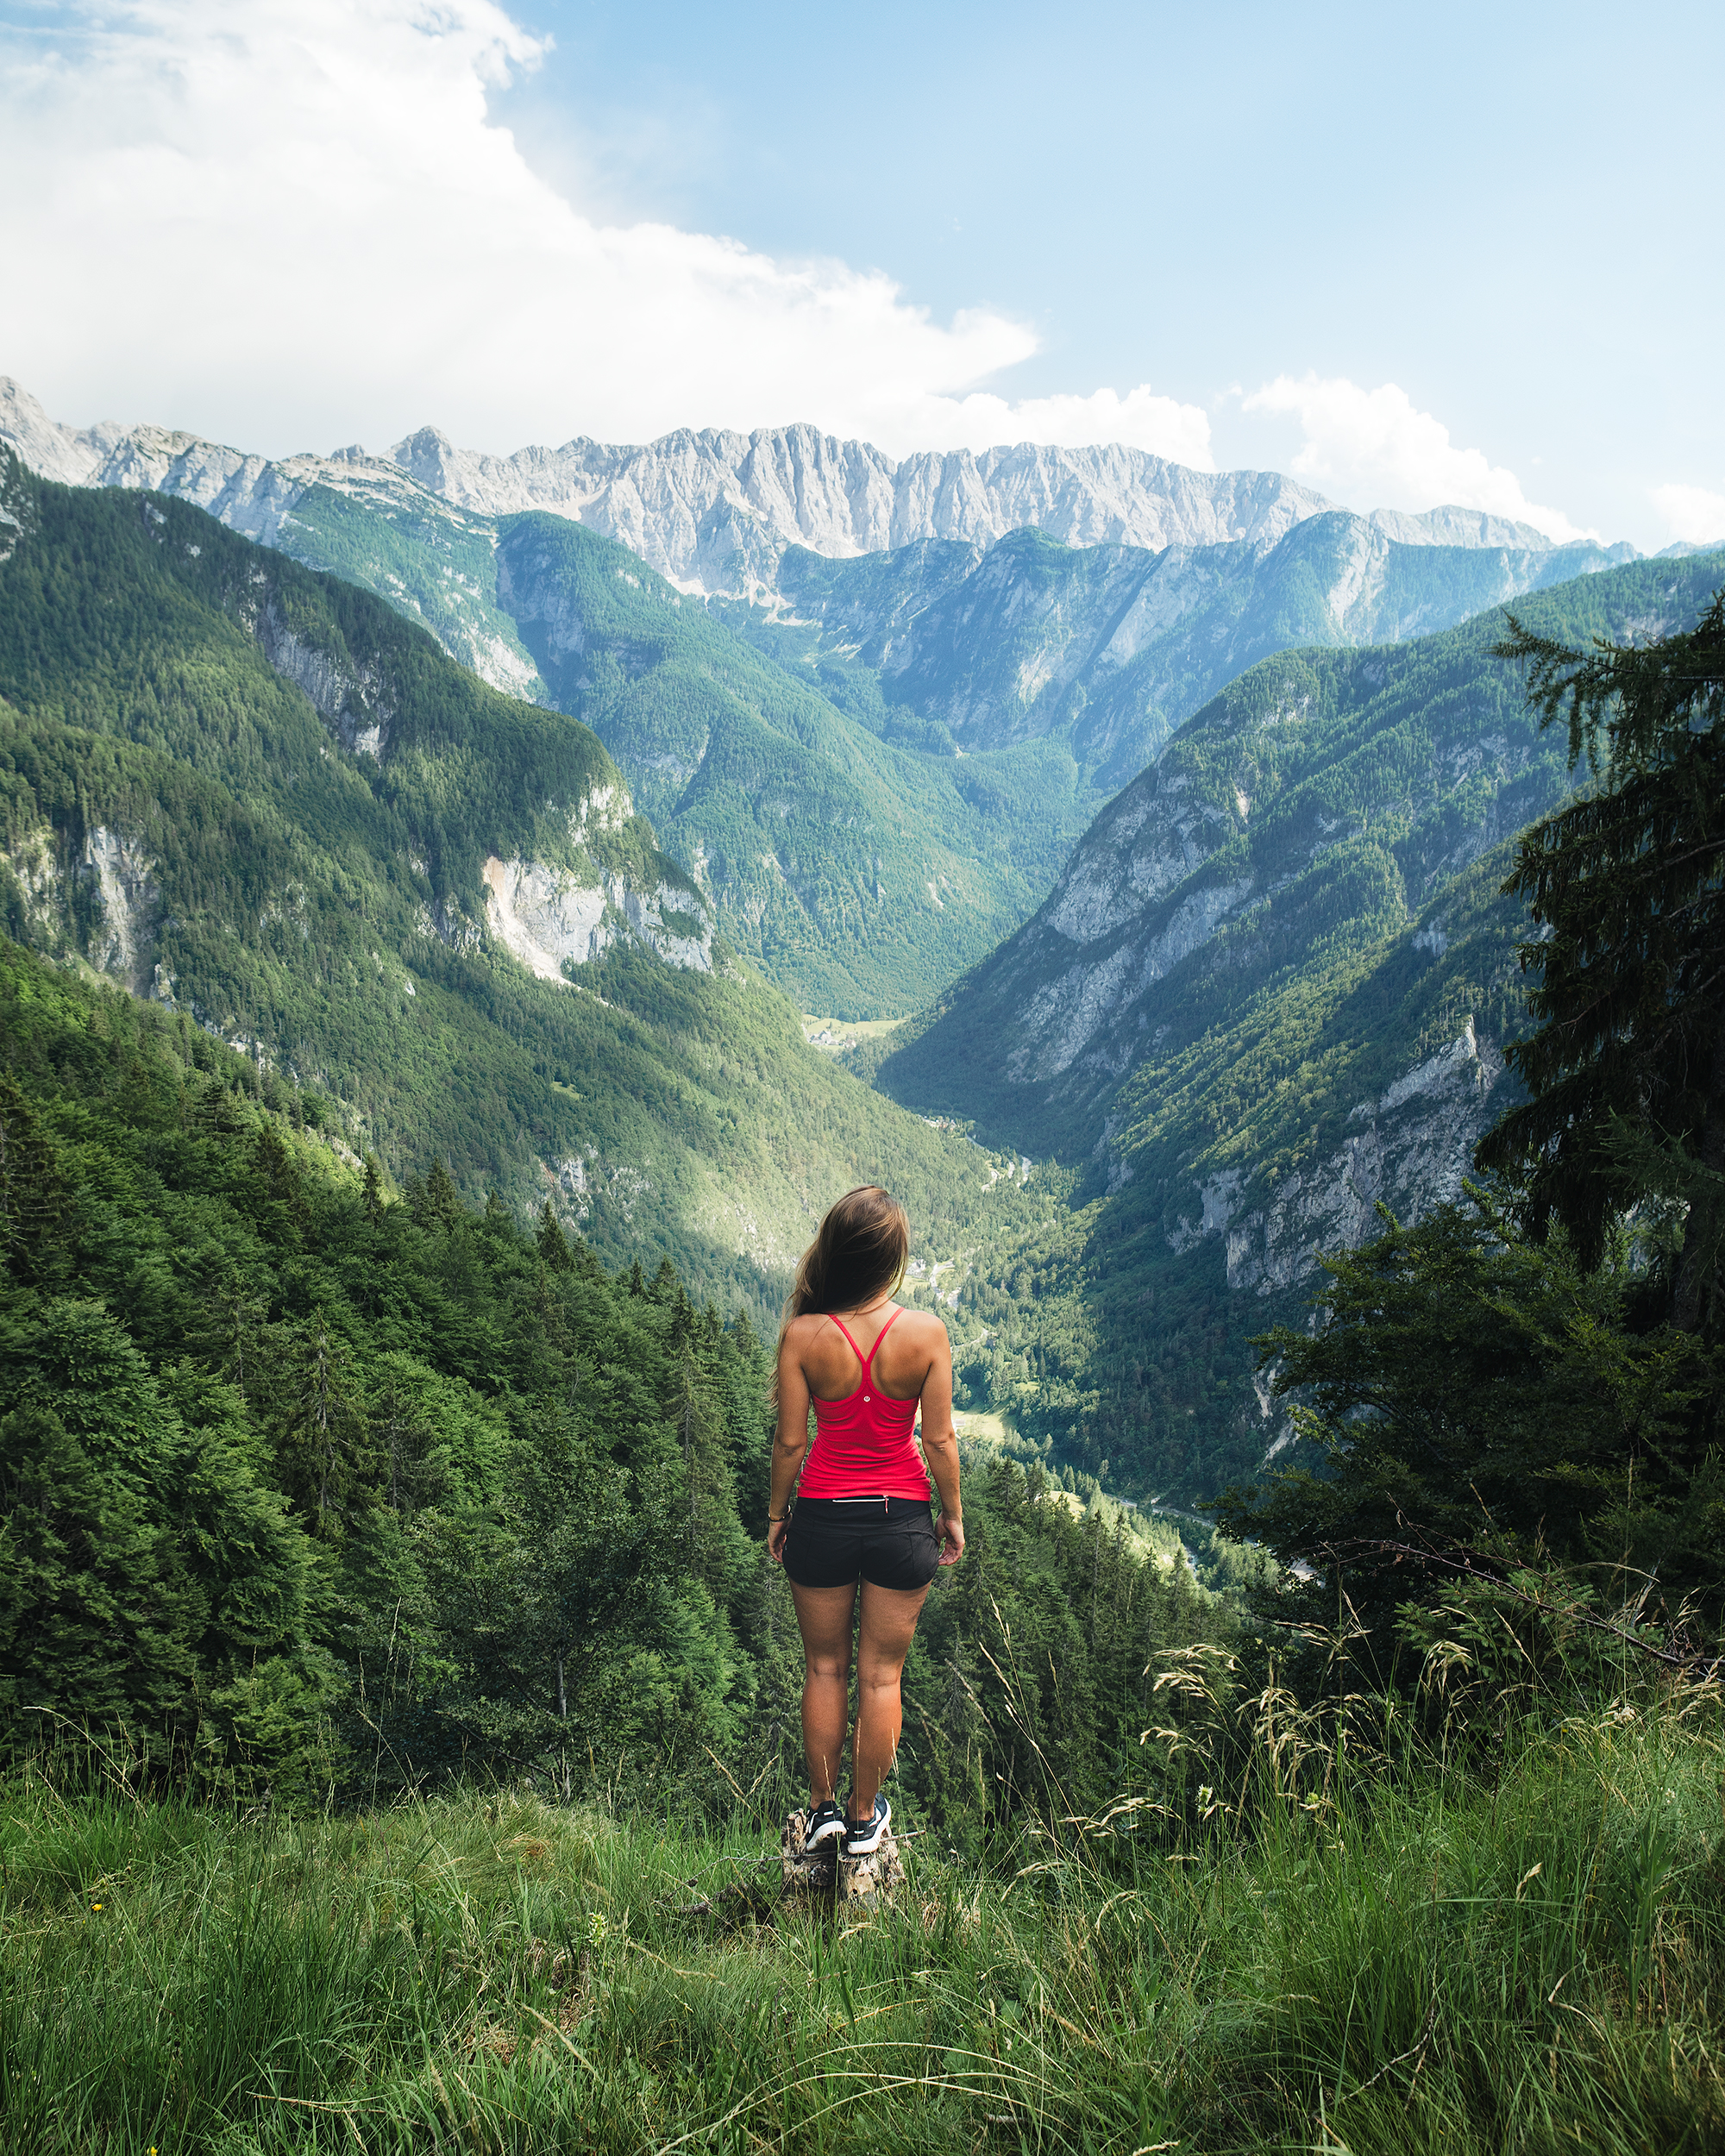 Supca-viewpoint-in-Triglav-National-Park-in-Slovenia-with-Andrea-by-Michael-Matti.jpg